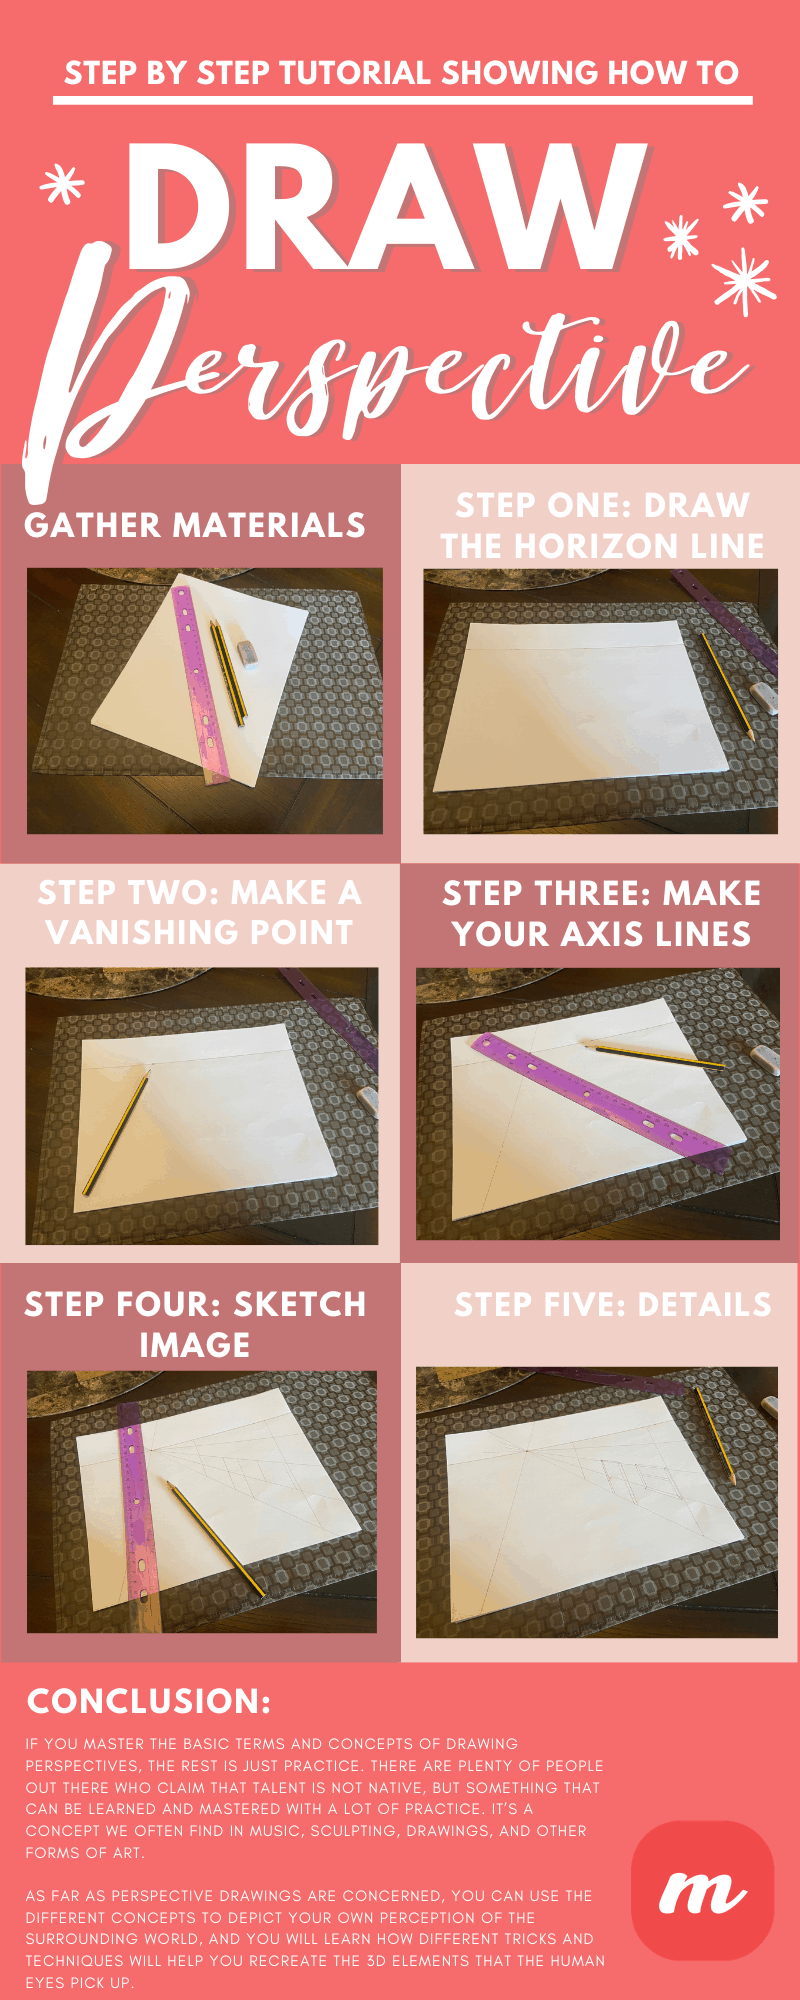 Step by Step Tutorial Showing How to Draw Perspectives - Infographic